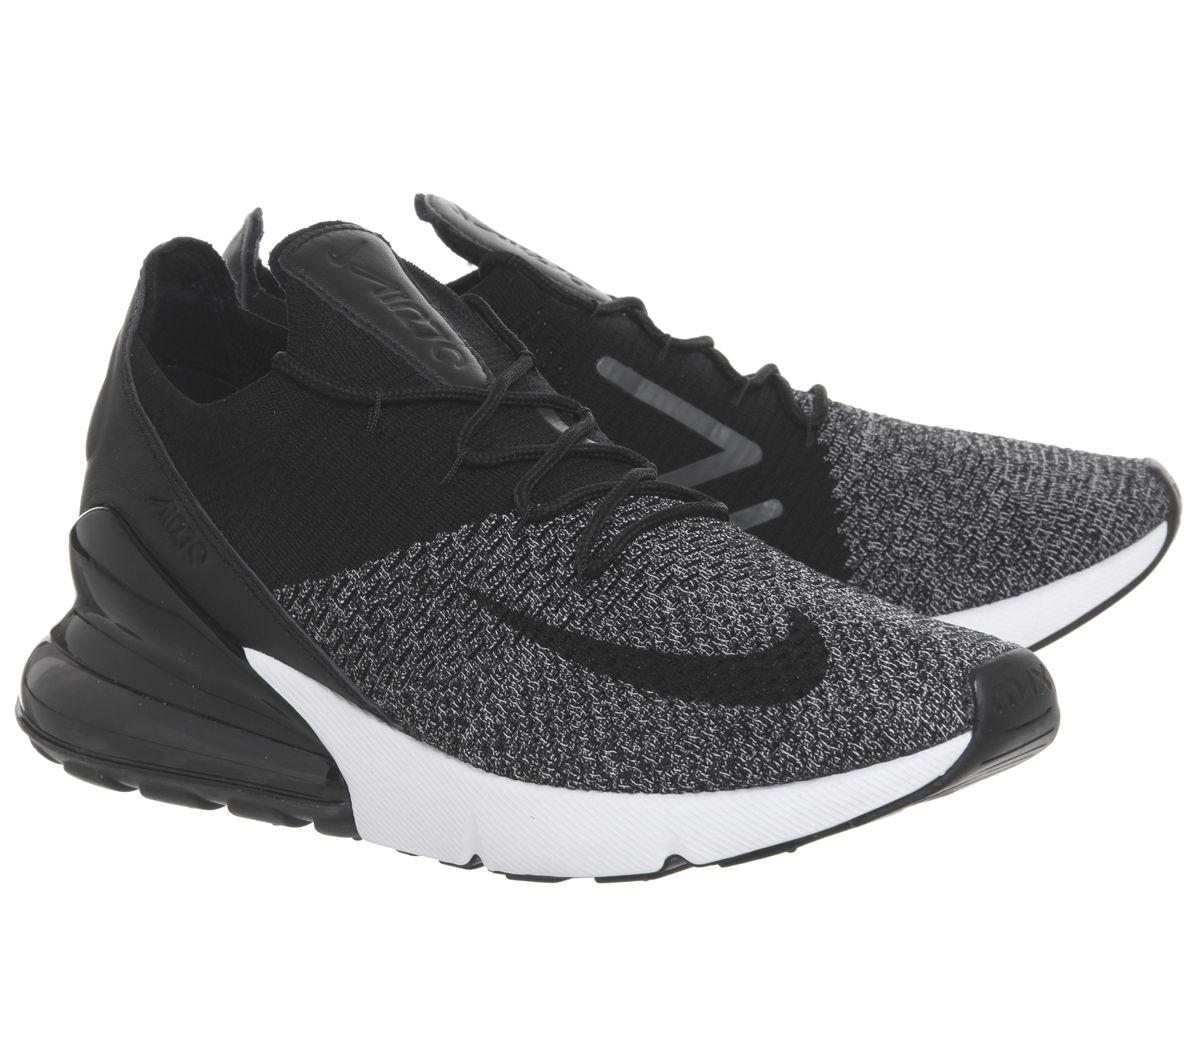 145a0a3928d1 Nike - Black Air Max 270 Flyknit Trainers for Men - Lyst. View fullscreen